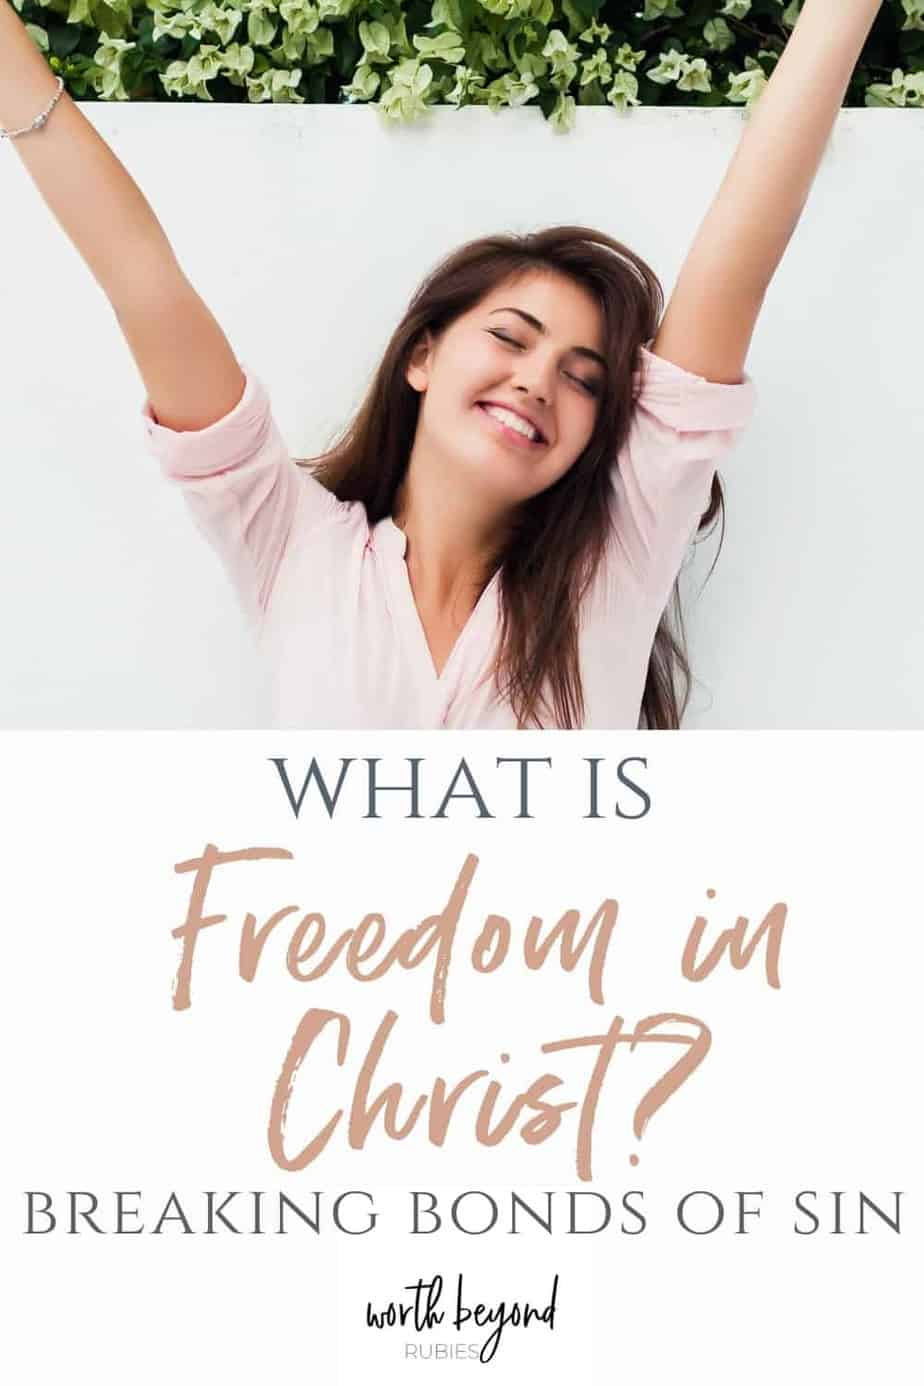 happy woman with arms in air and text that says What is Freedom in Christ? - Breaking Bonds of Sin!